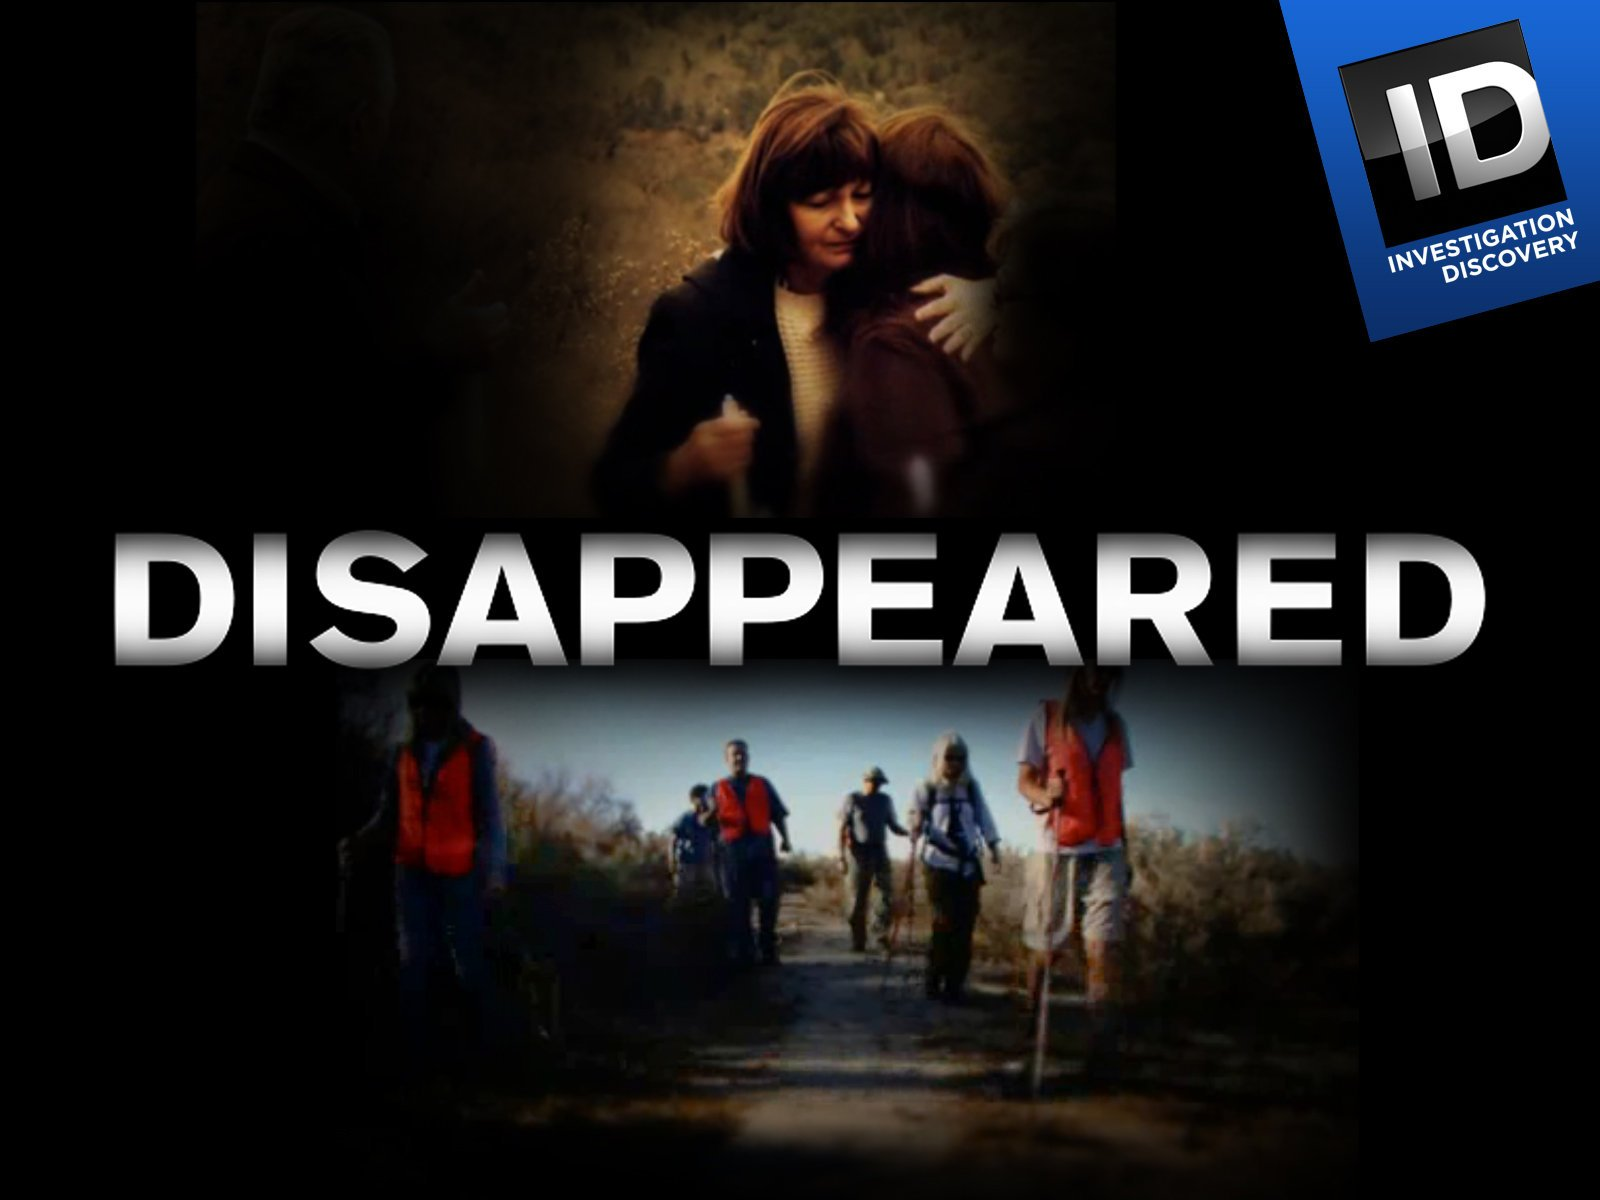 Disappeared doomed romance